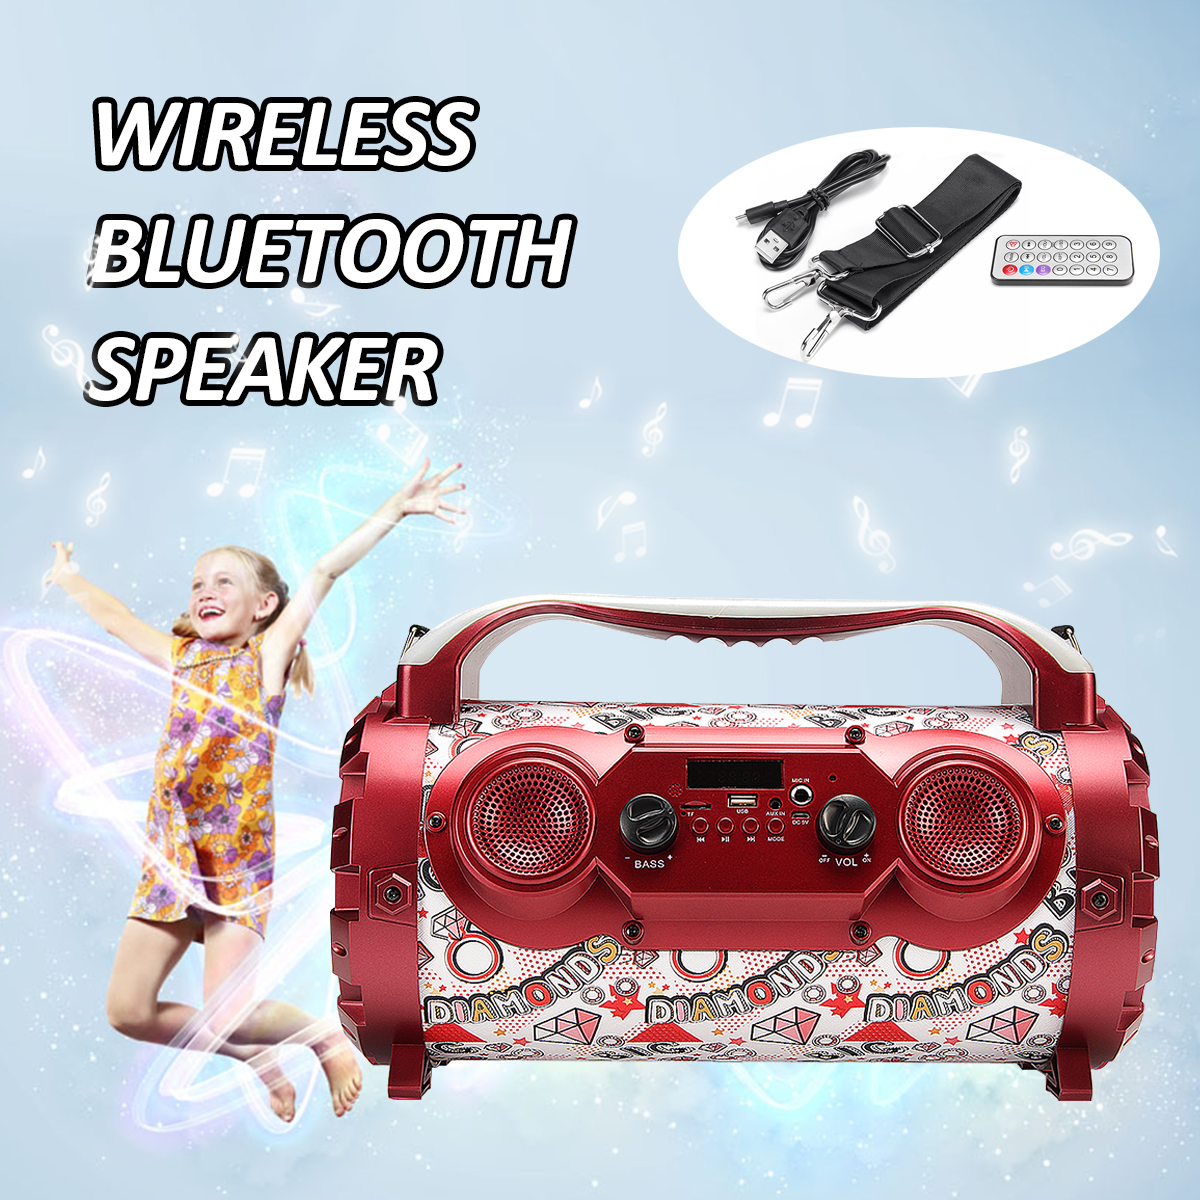 Red Wireless Bluetooth Speakers 15W Portable Loudspeaker Low Sound System Outdoor Car Music Speakers Radio Player 36x18x22cm [terns]sony bluetooth enabled speakers red srs x3 rc[japan import]